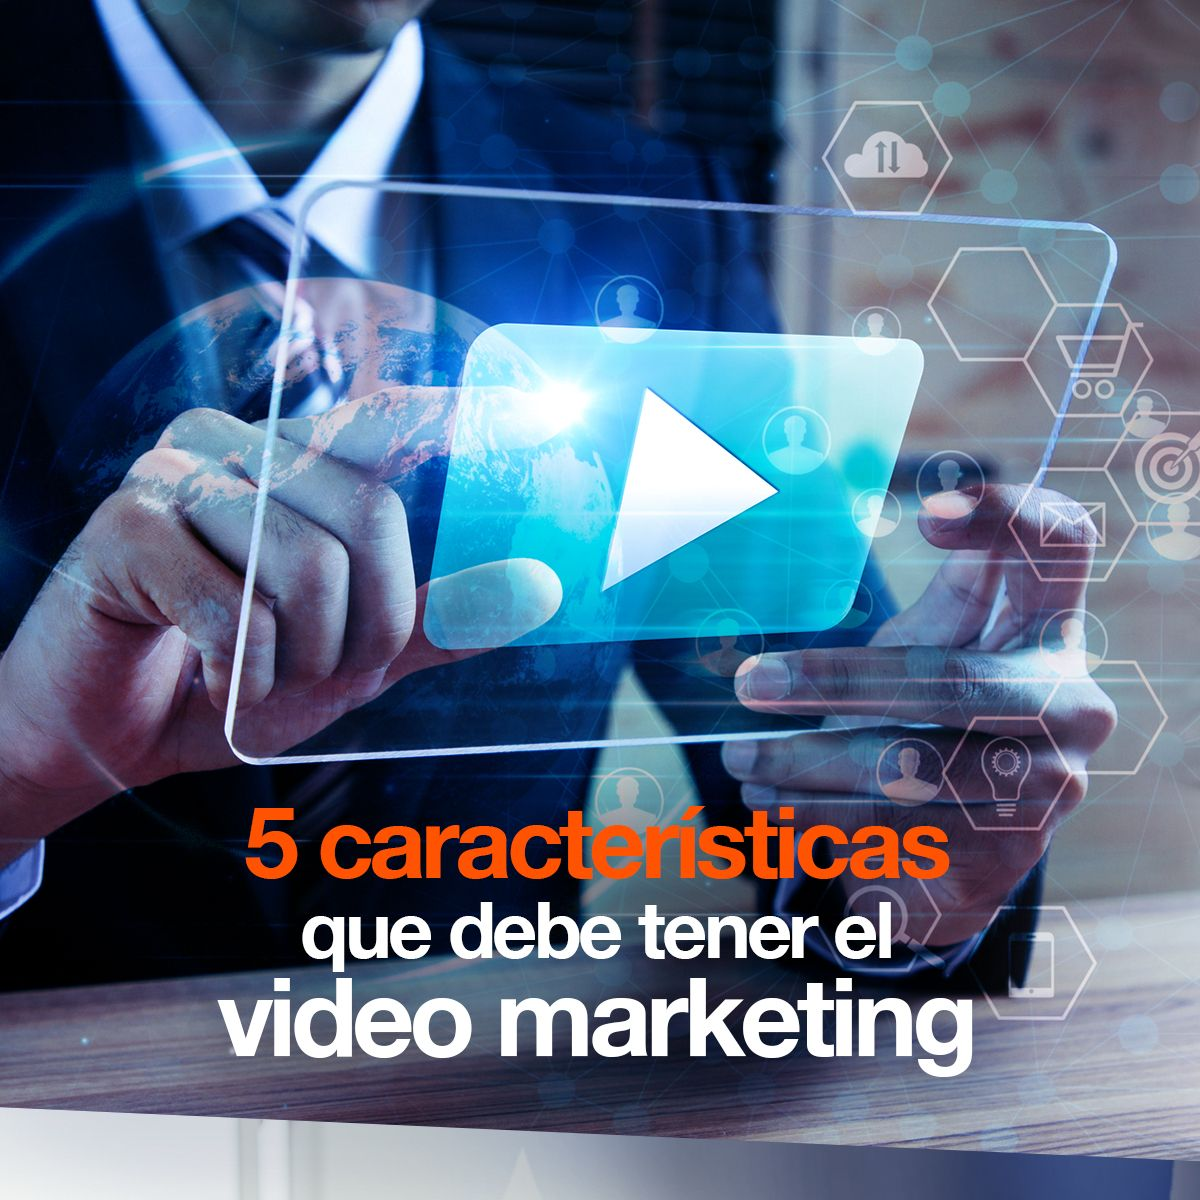 5 características que debe tener el video marketing